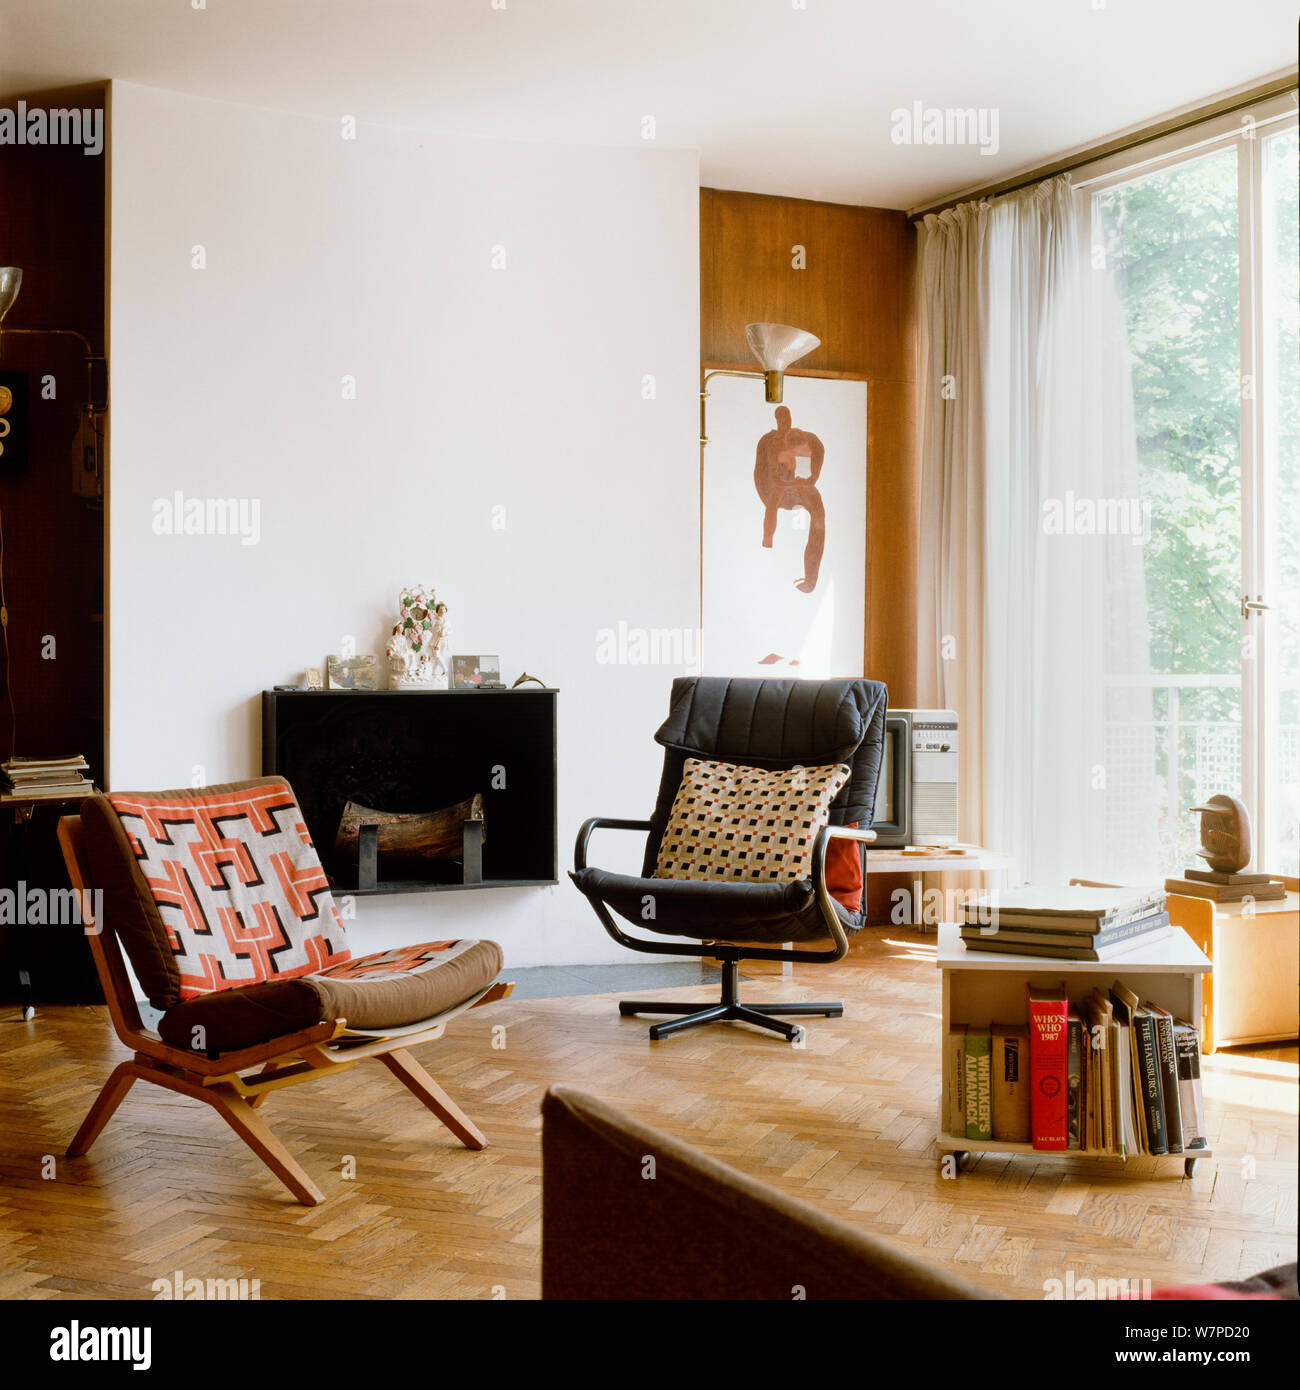 Chairs by fireplace in retro living room Stock Photo - Alamy